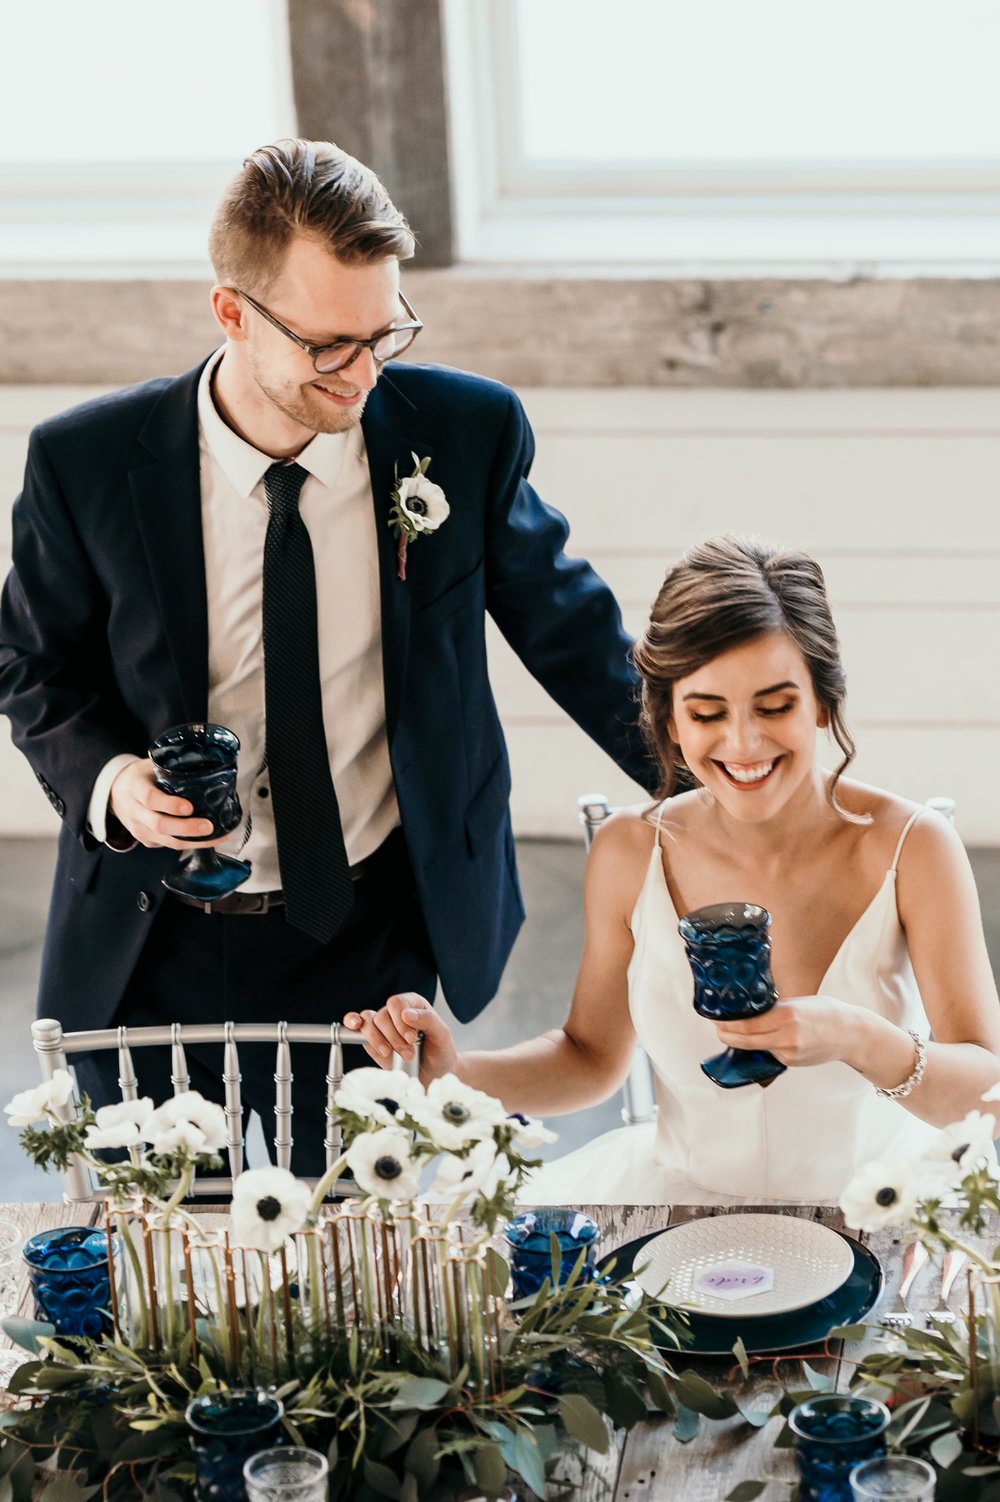 Jewel Tone Wedding Styled Shoot_Silver Knot_Montana Wedding Planner_Montana Wedding Photographer_Montana Wedding Videography_Honeybee Weddings-1303.jpg